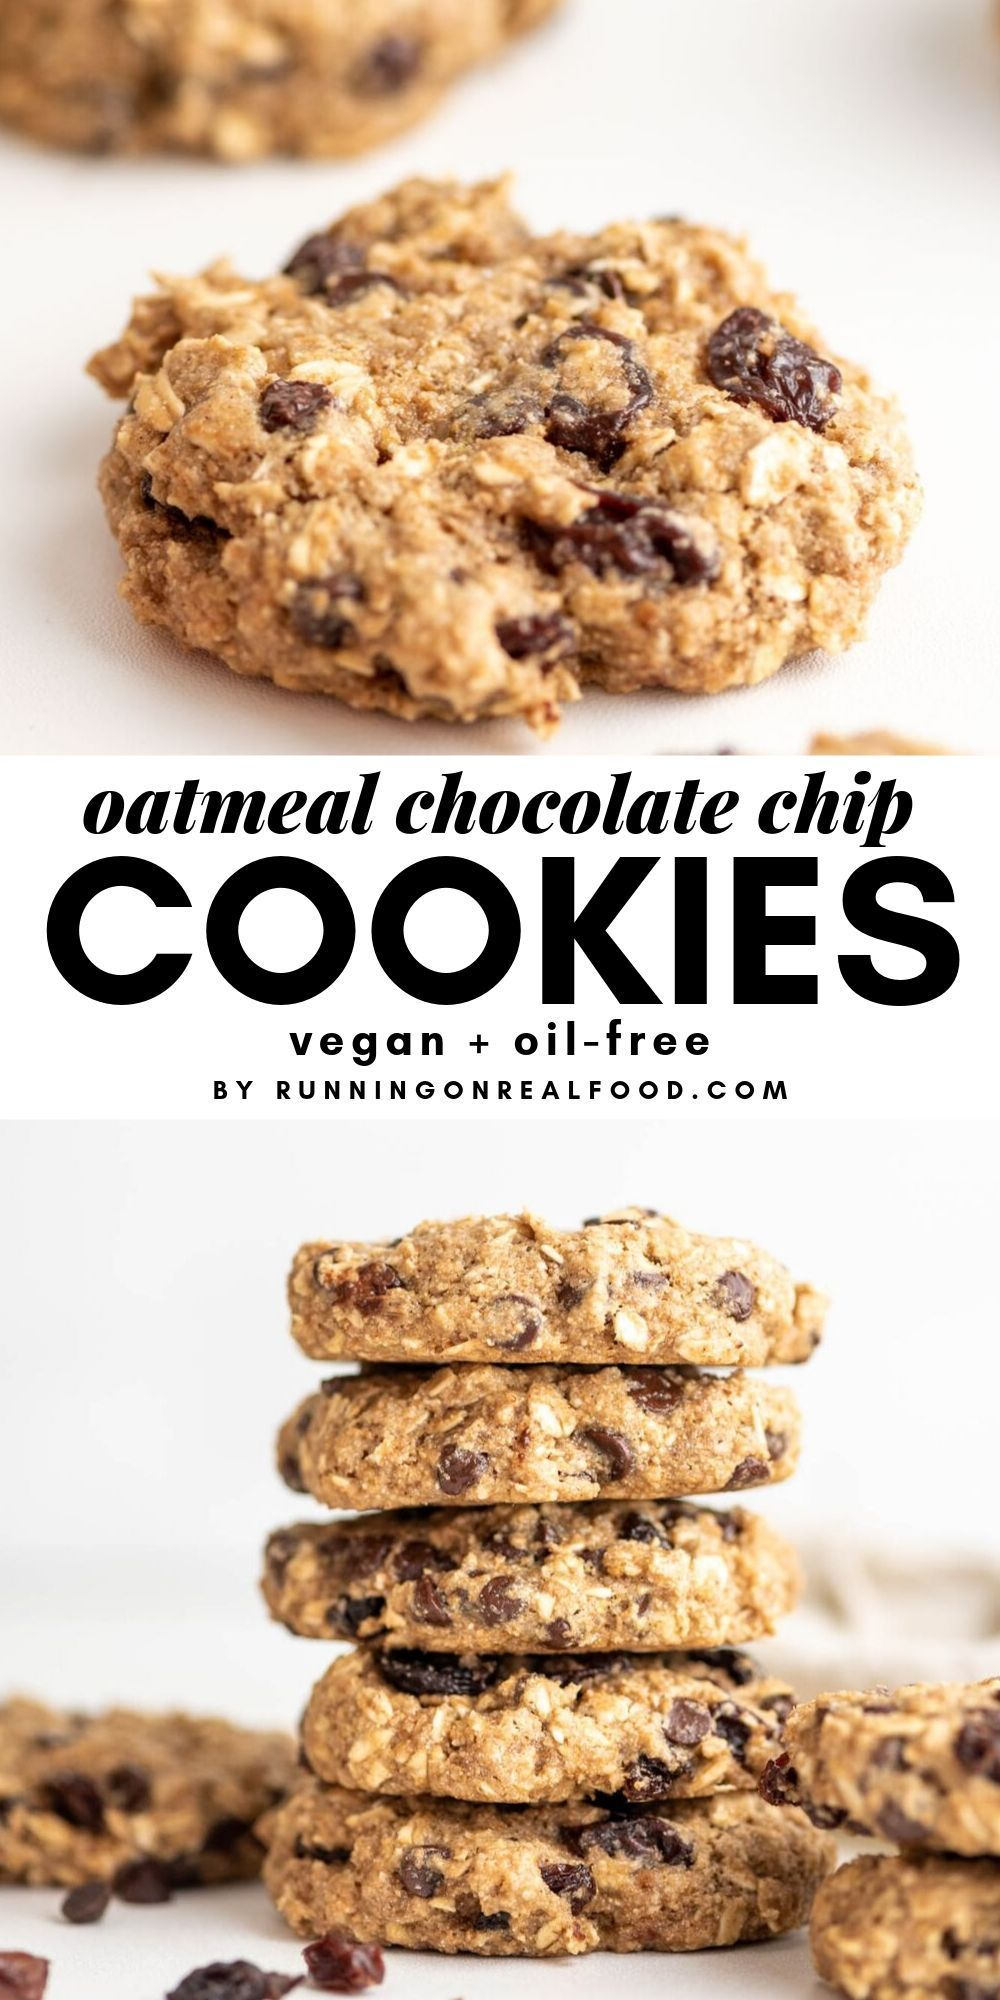 Vegan Oatmeal Raisin Chocolate Chip Cookies Recipe Vegan Oatmeal Chocolate Chip Cookies Oatmeal Raisin Chocolate Chip Cookies Vegan Oatmeal Raisin Cookies